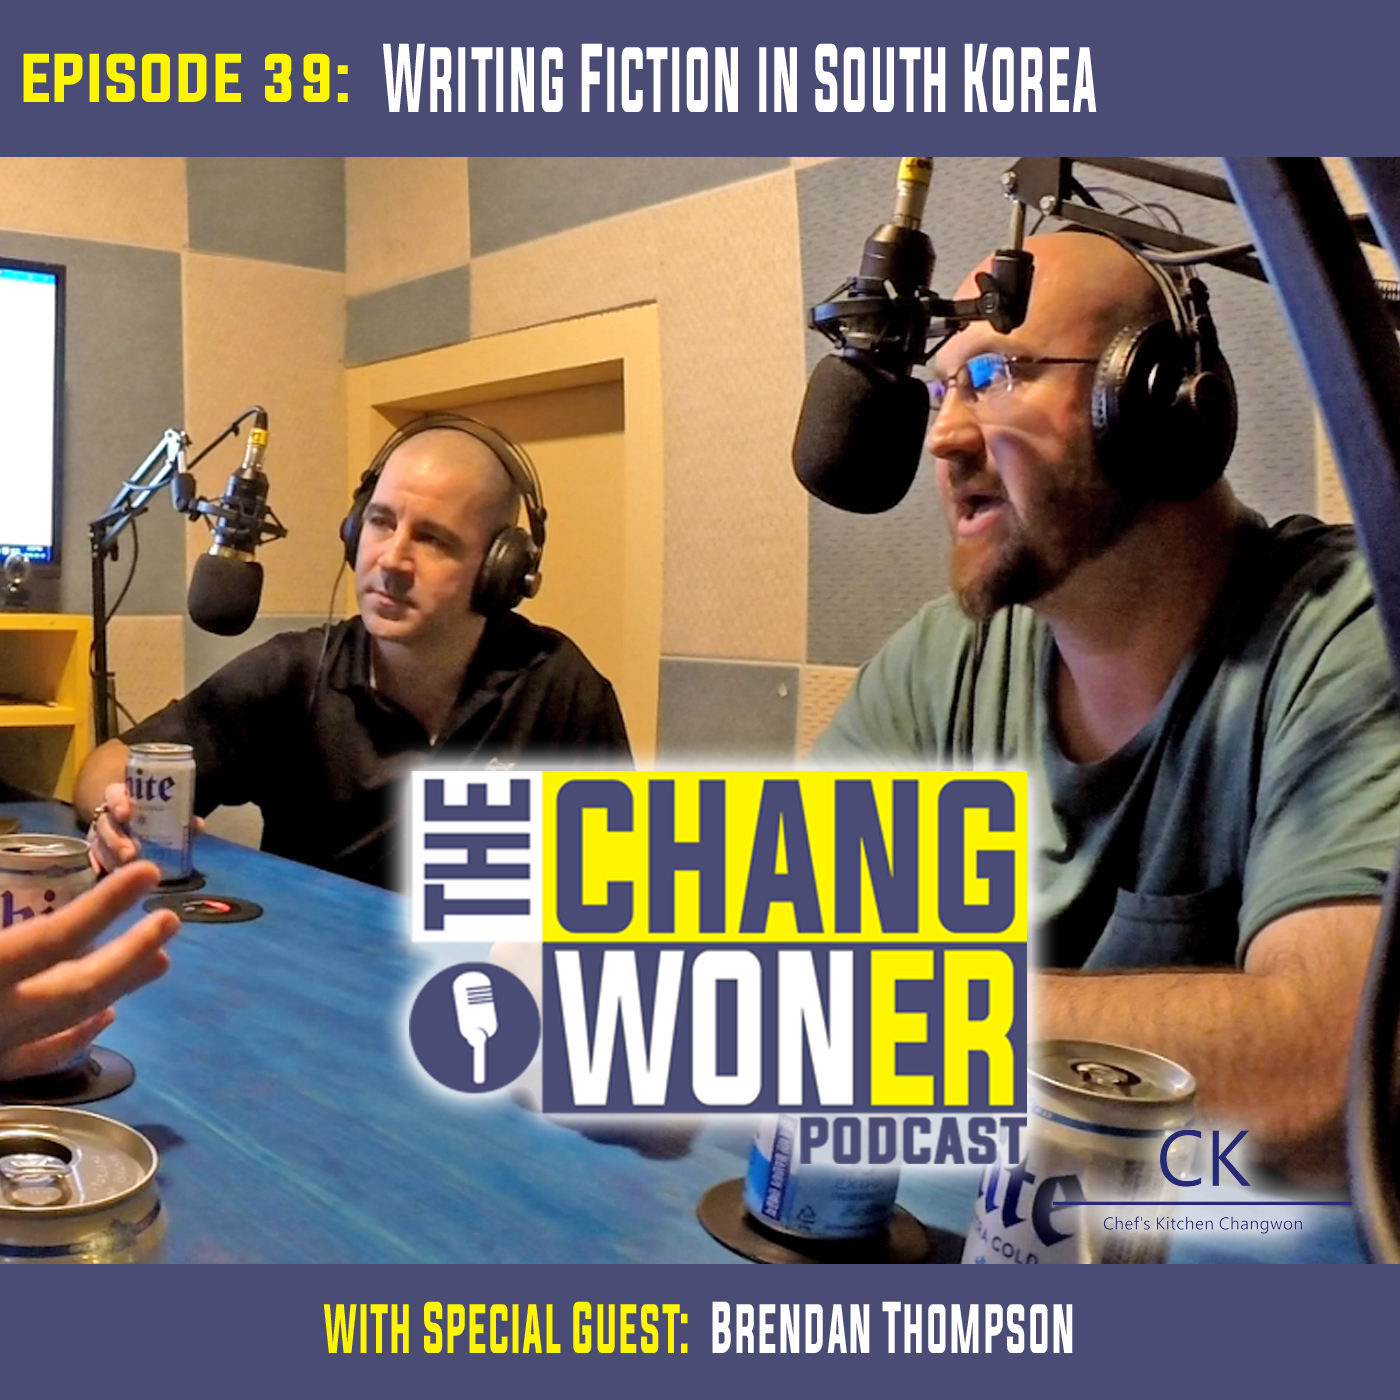 Artwork for Writing Fiction and Publishing in South Korea. -guest Brendan Thompson (Ep 39)